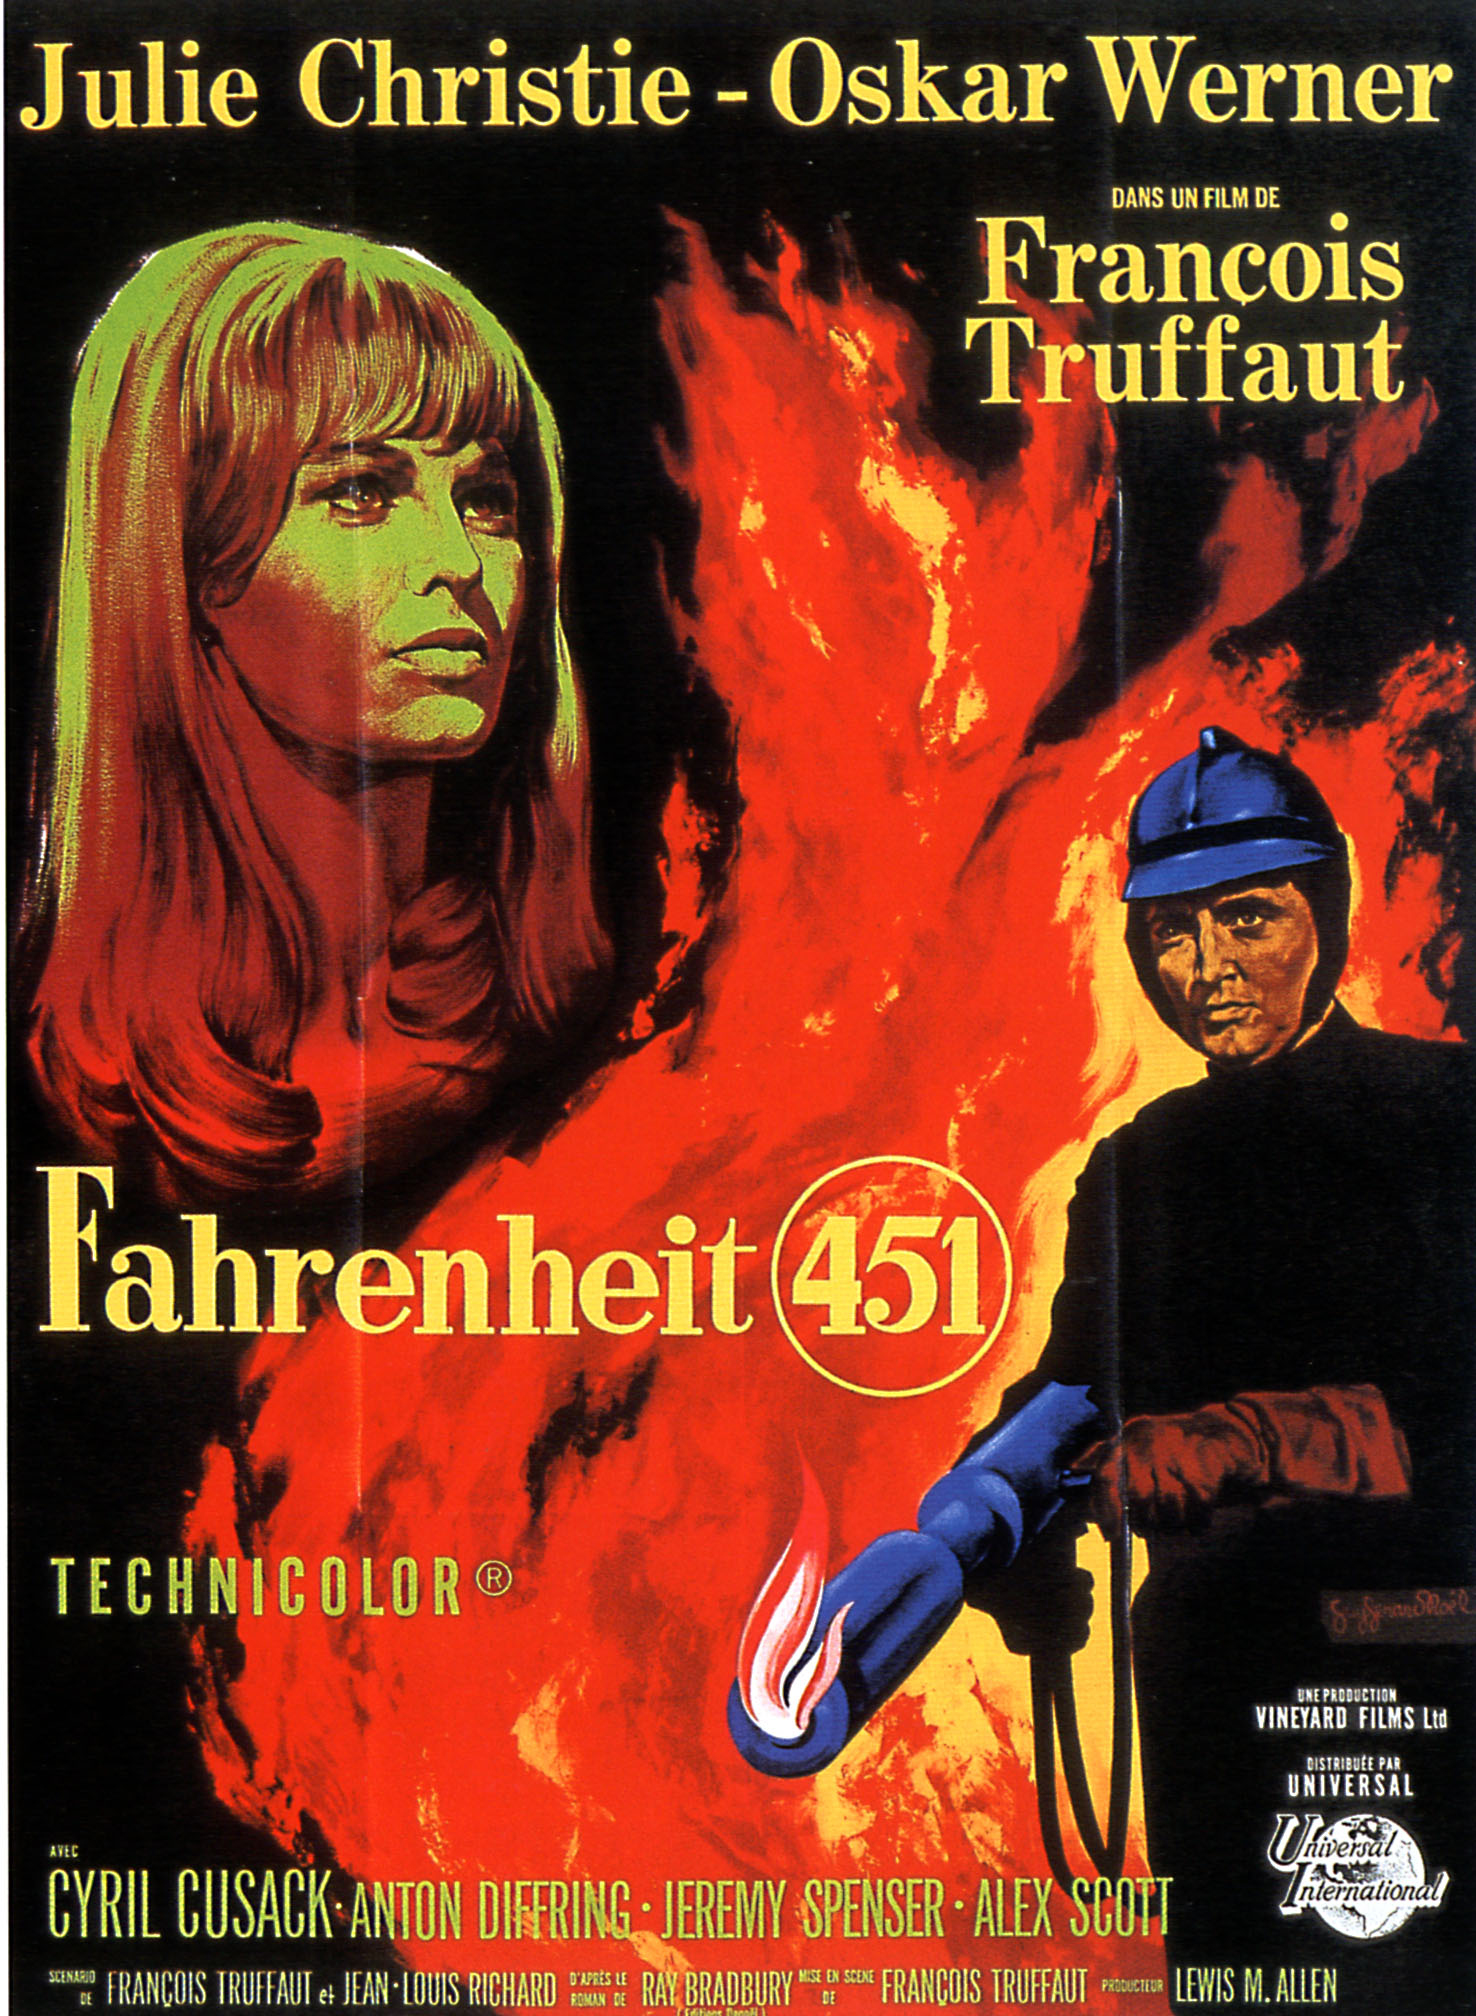 technology in fahrenheit 451 and the Technology plays a big role in fahrenheit 451 in that future, everyone was  obsessed with television and radio, being drawn into it to the point.